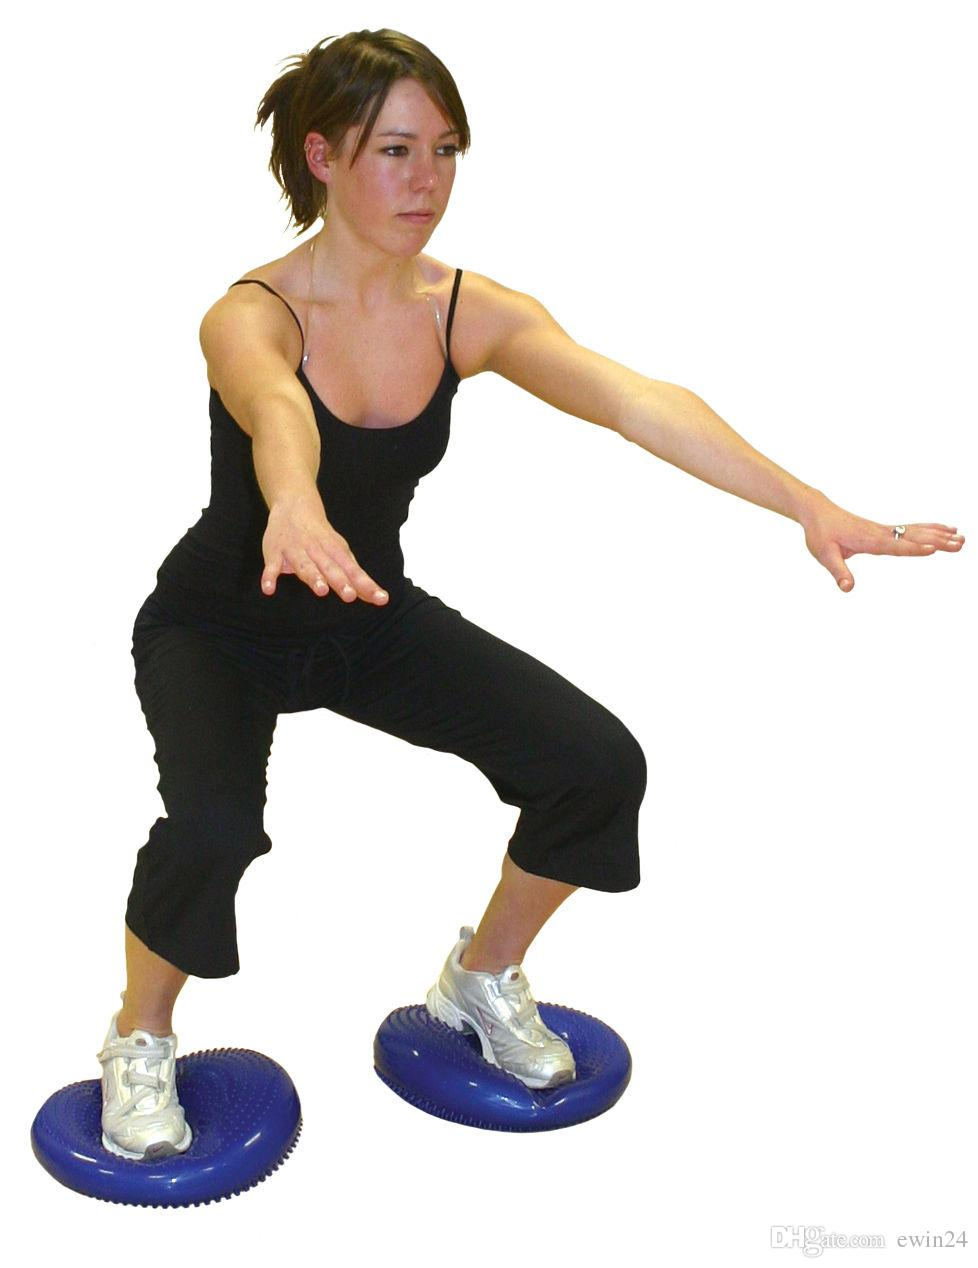 portable wobble chair exercises kid bean bag chairs target 2017 inflatable yoga stability balance disc massage cushion mat ball wheel pad from ...